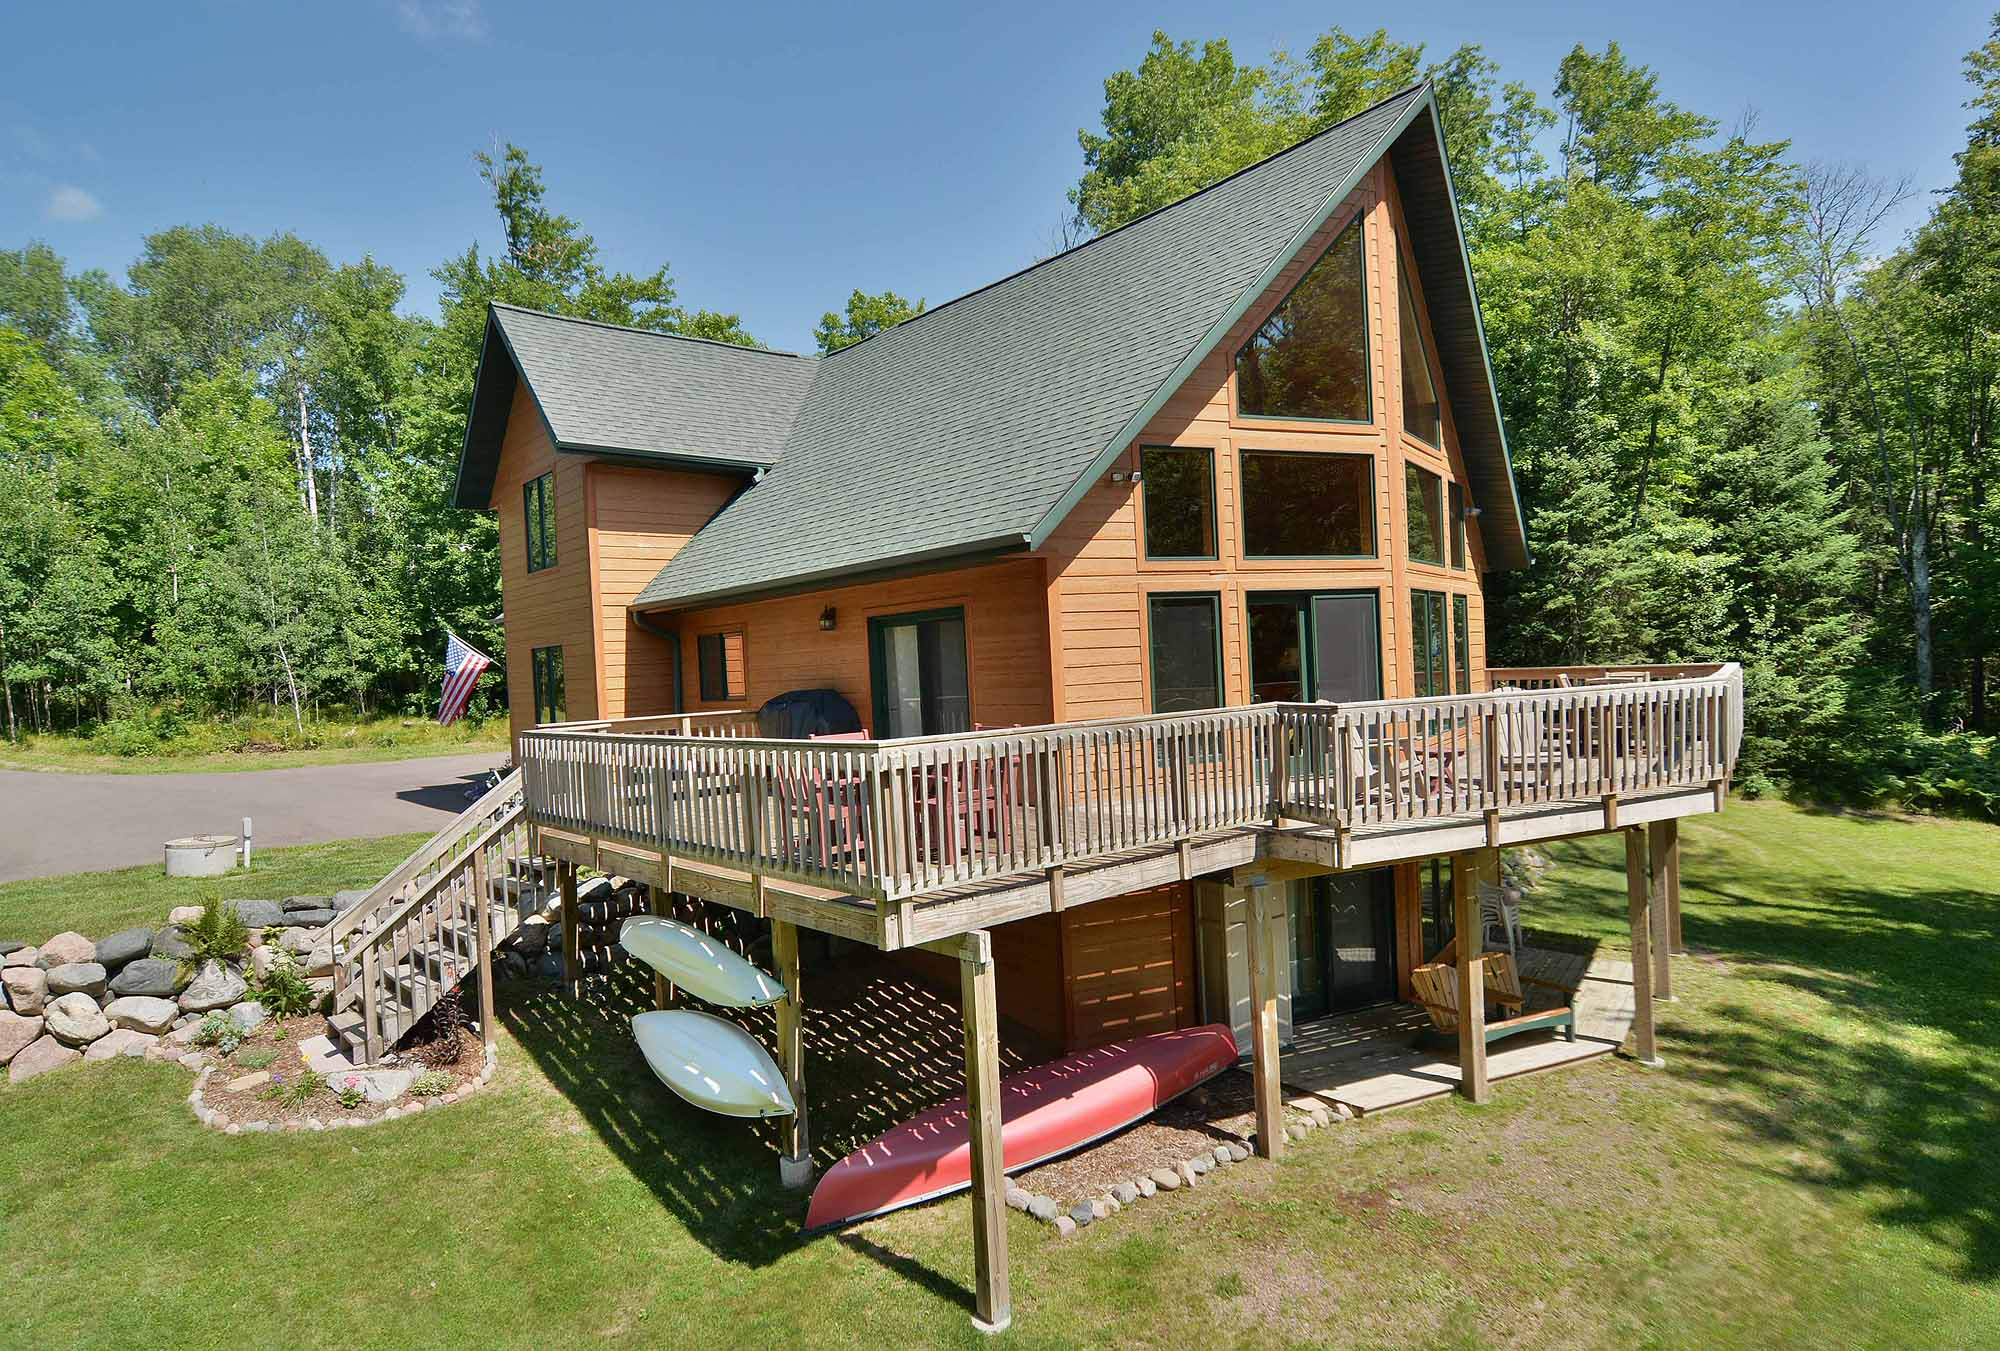 slide rent cottage wisconsin in rentals cabin northern a background cabins home vacation